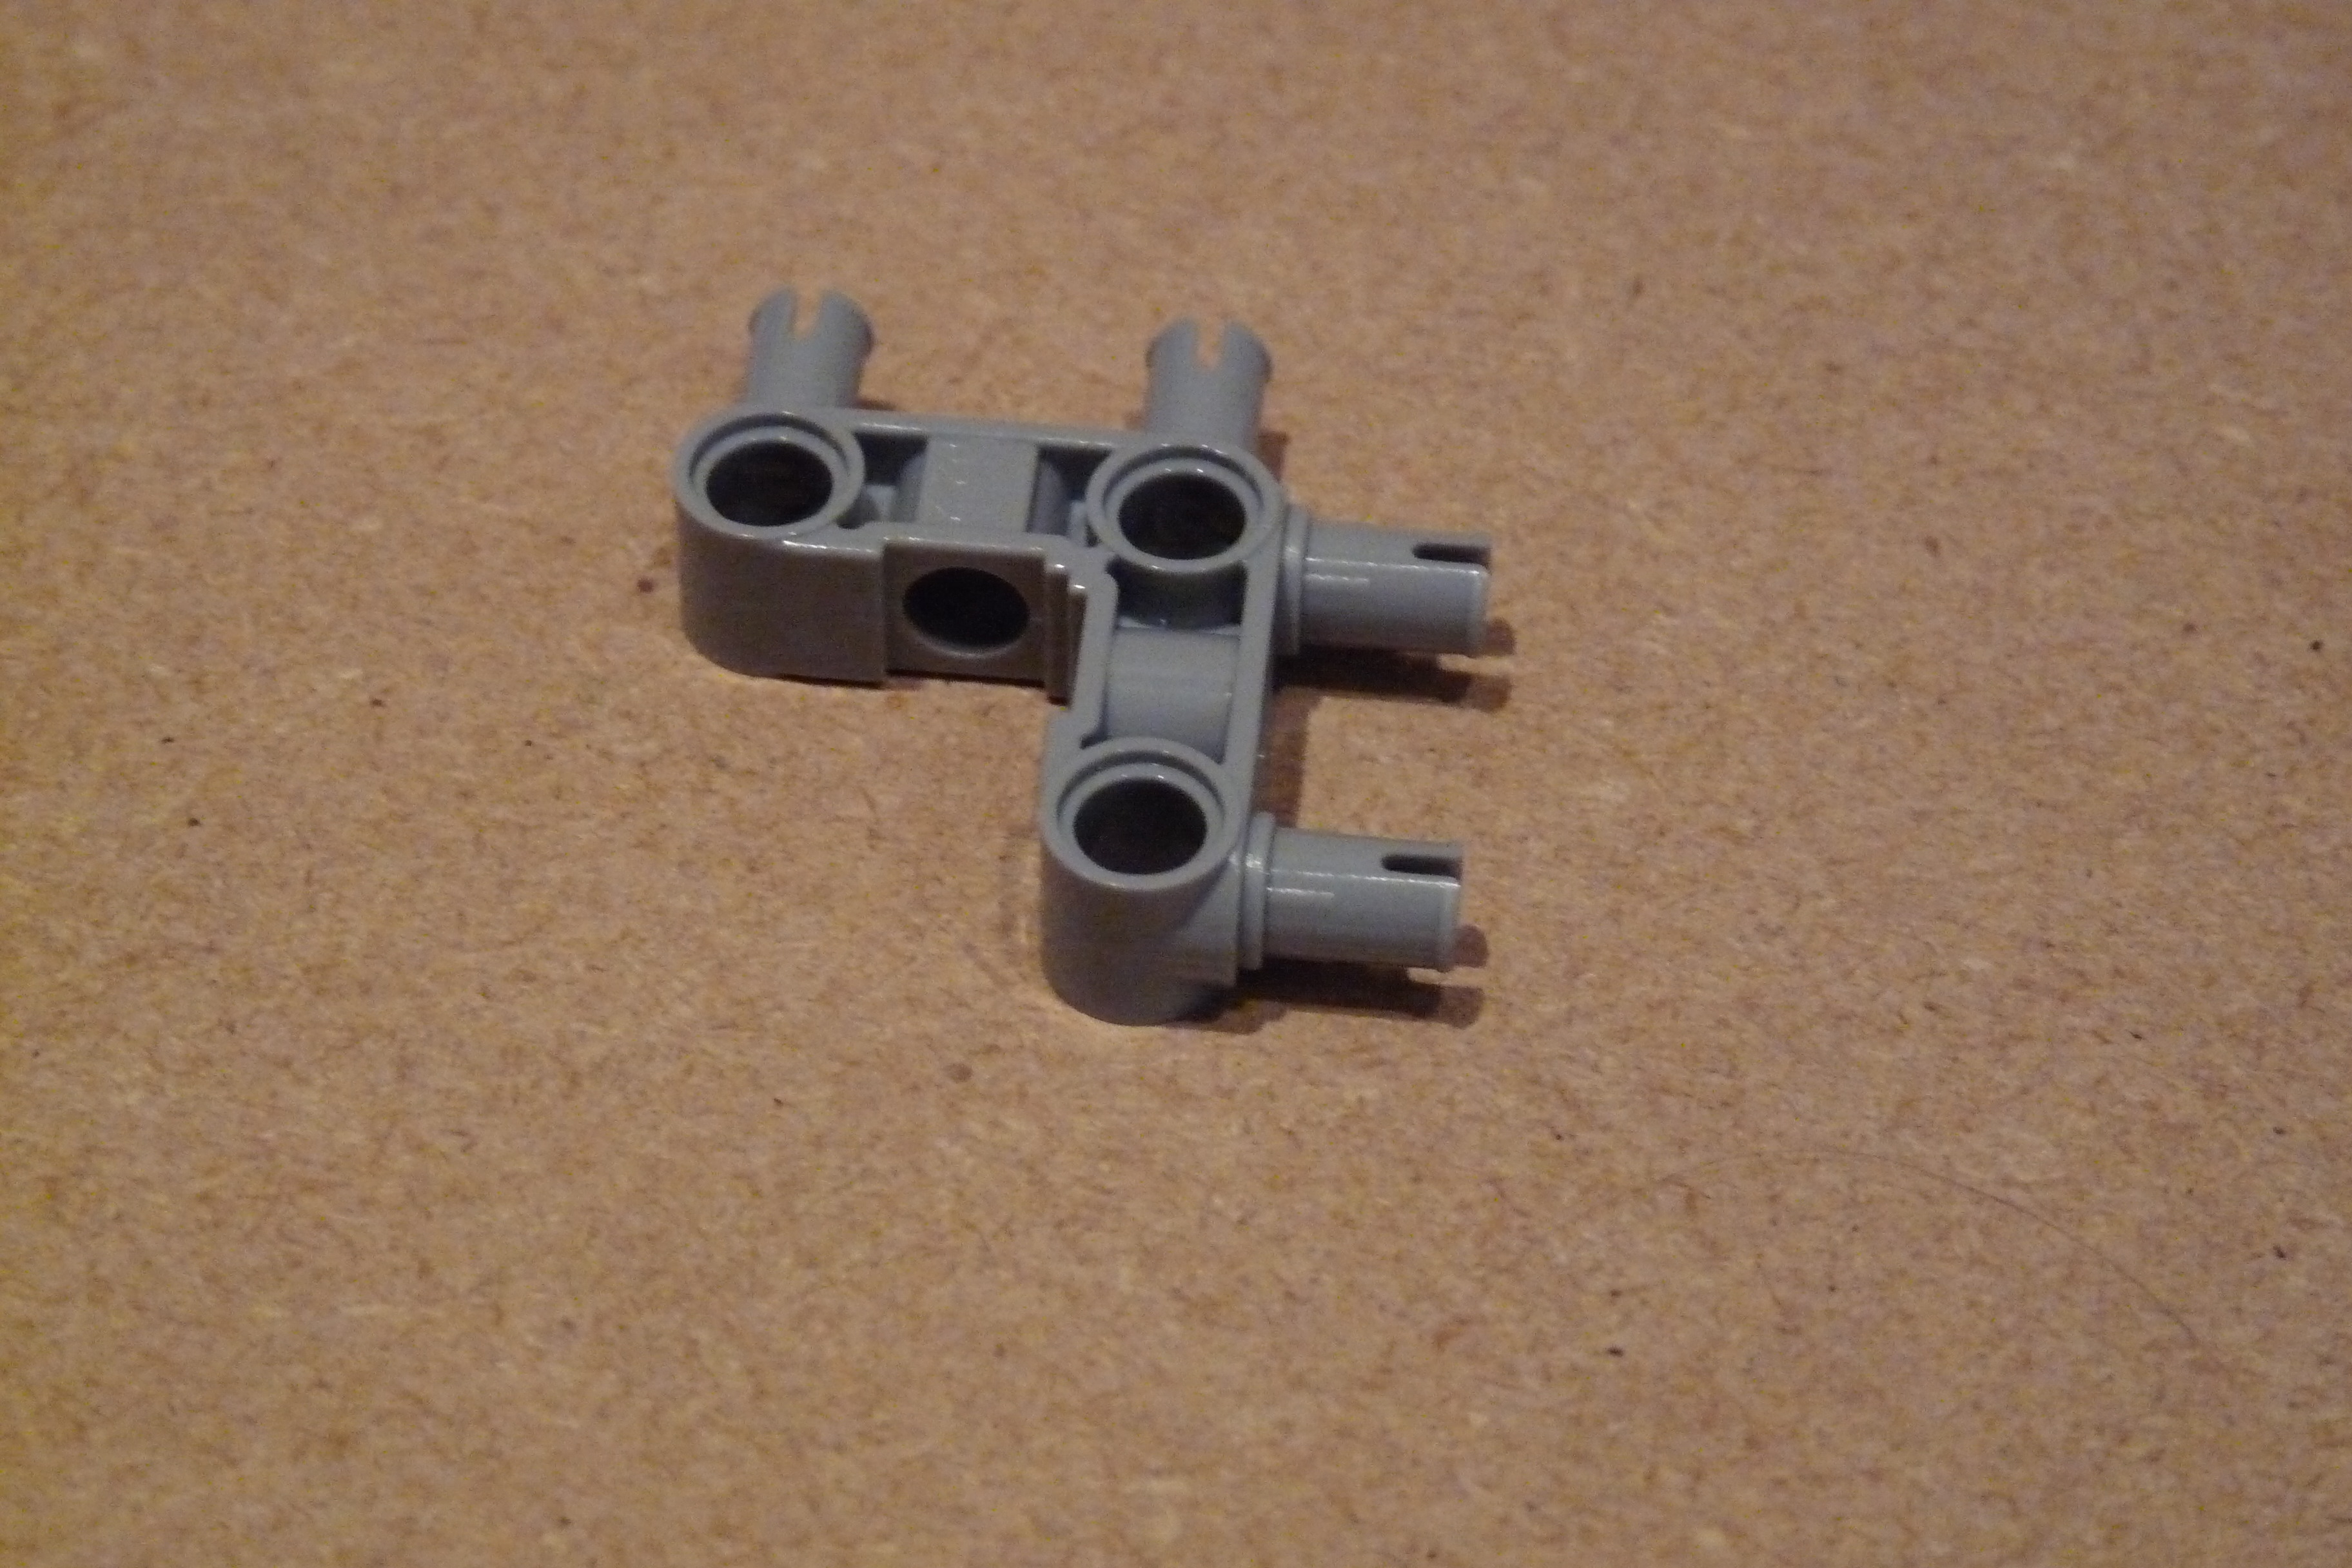 Picture of Parts From the Kit Needed